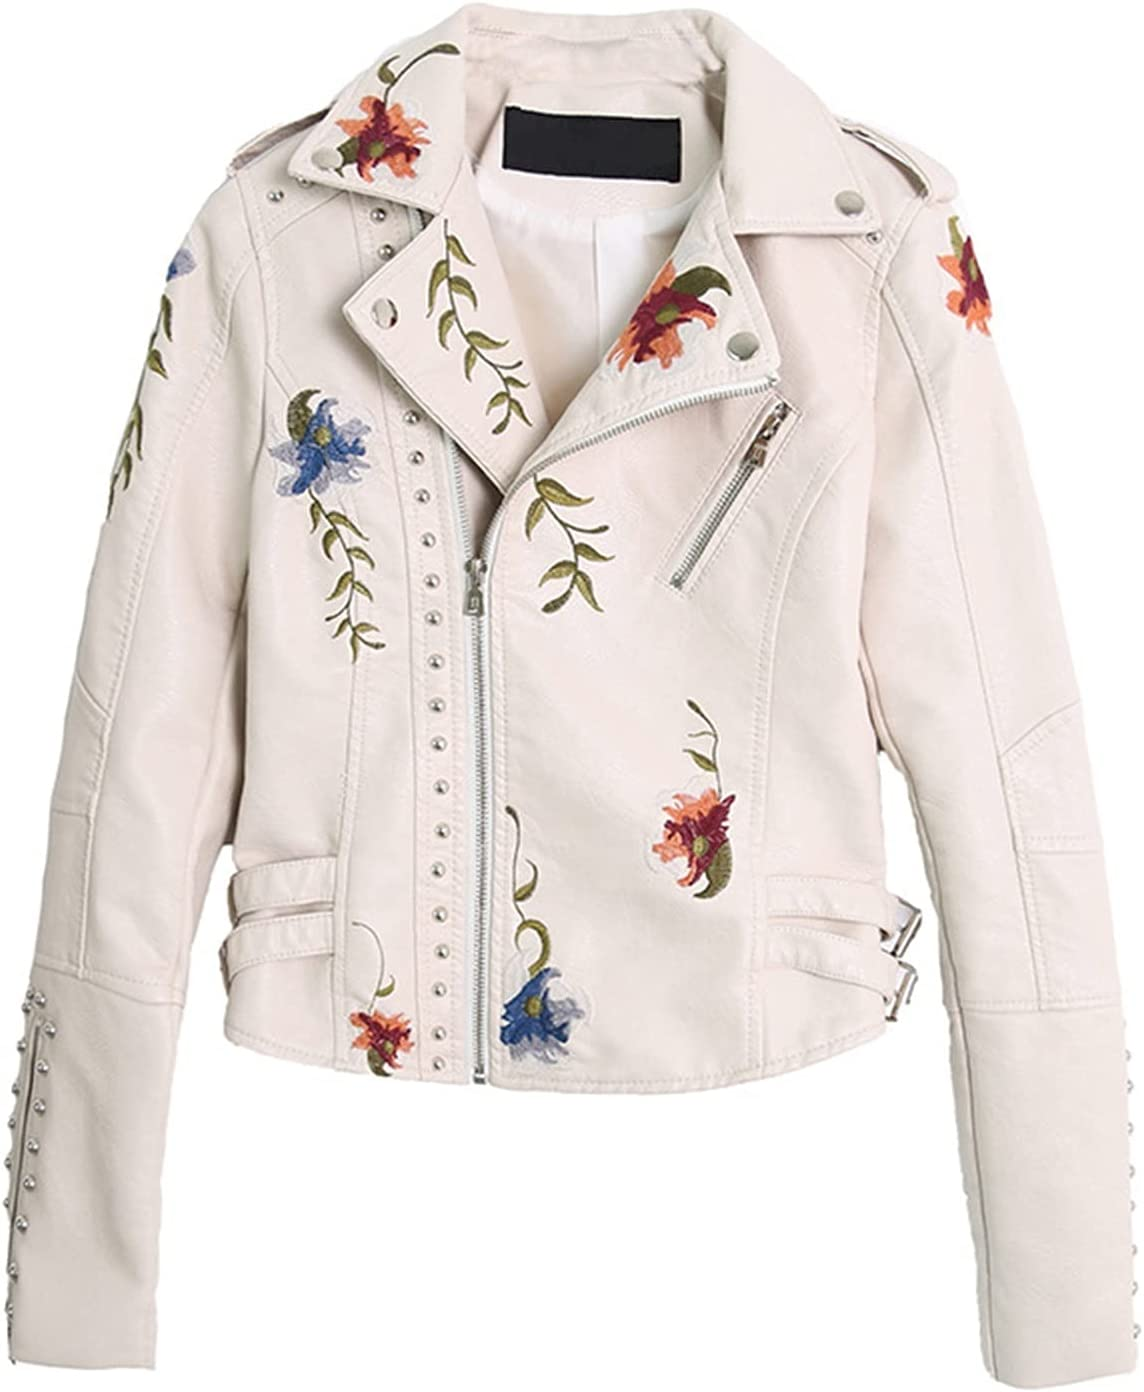 safety Womens Long Sleeve Floral Embroidered J Large discharge sale Collar Turn-Down Leather